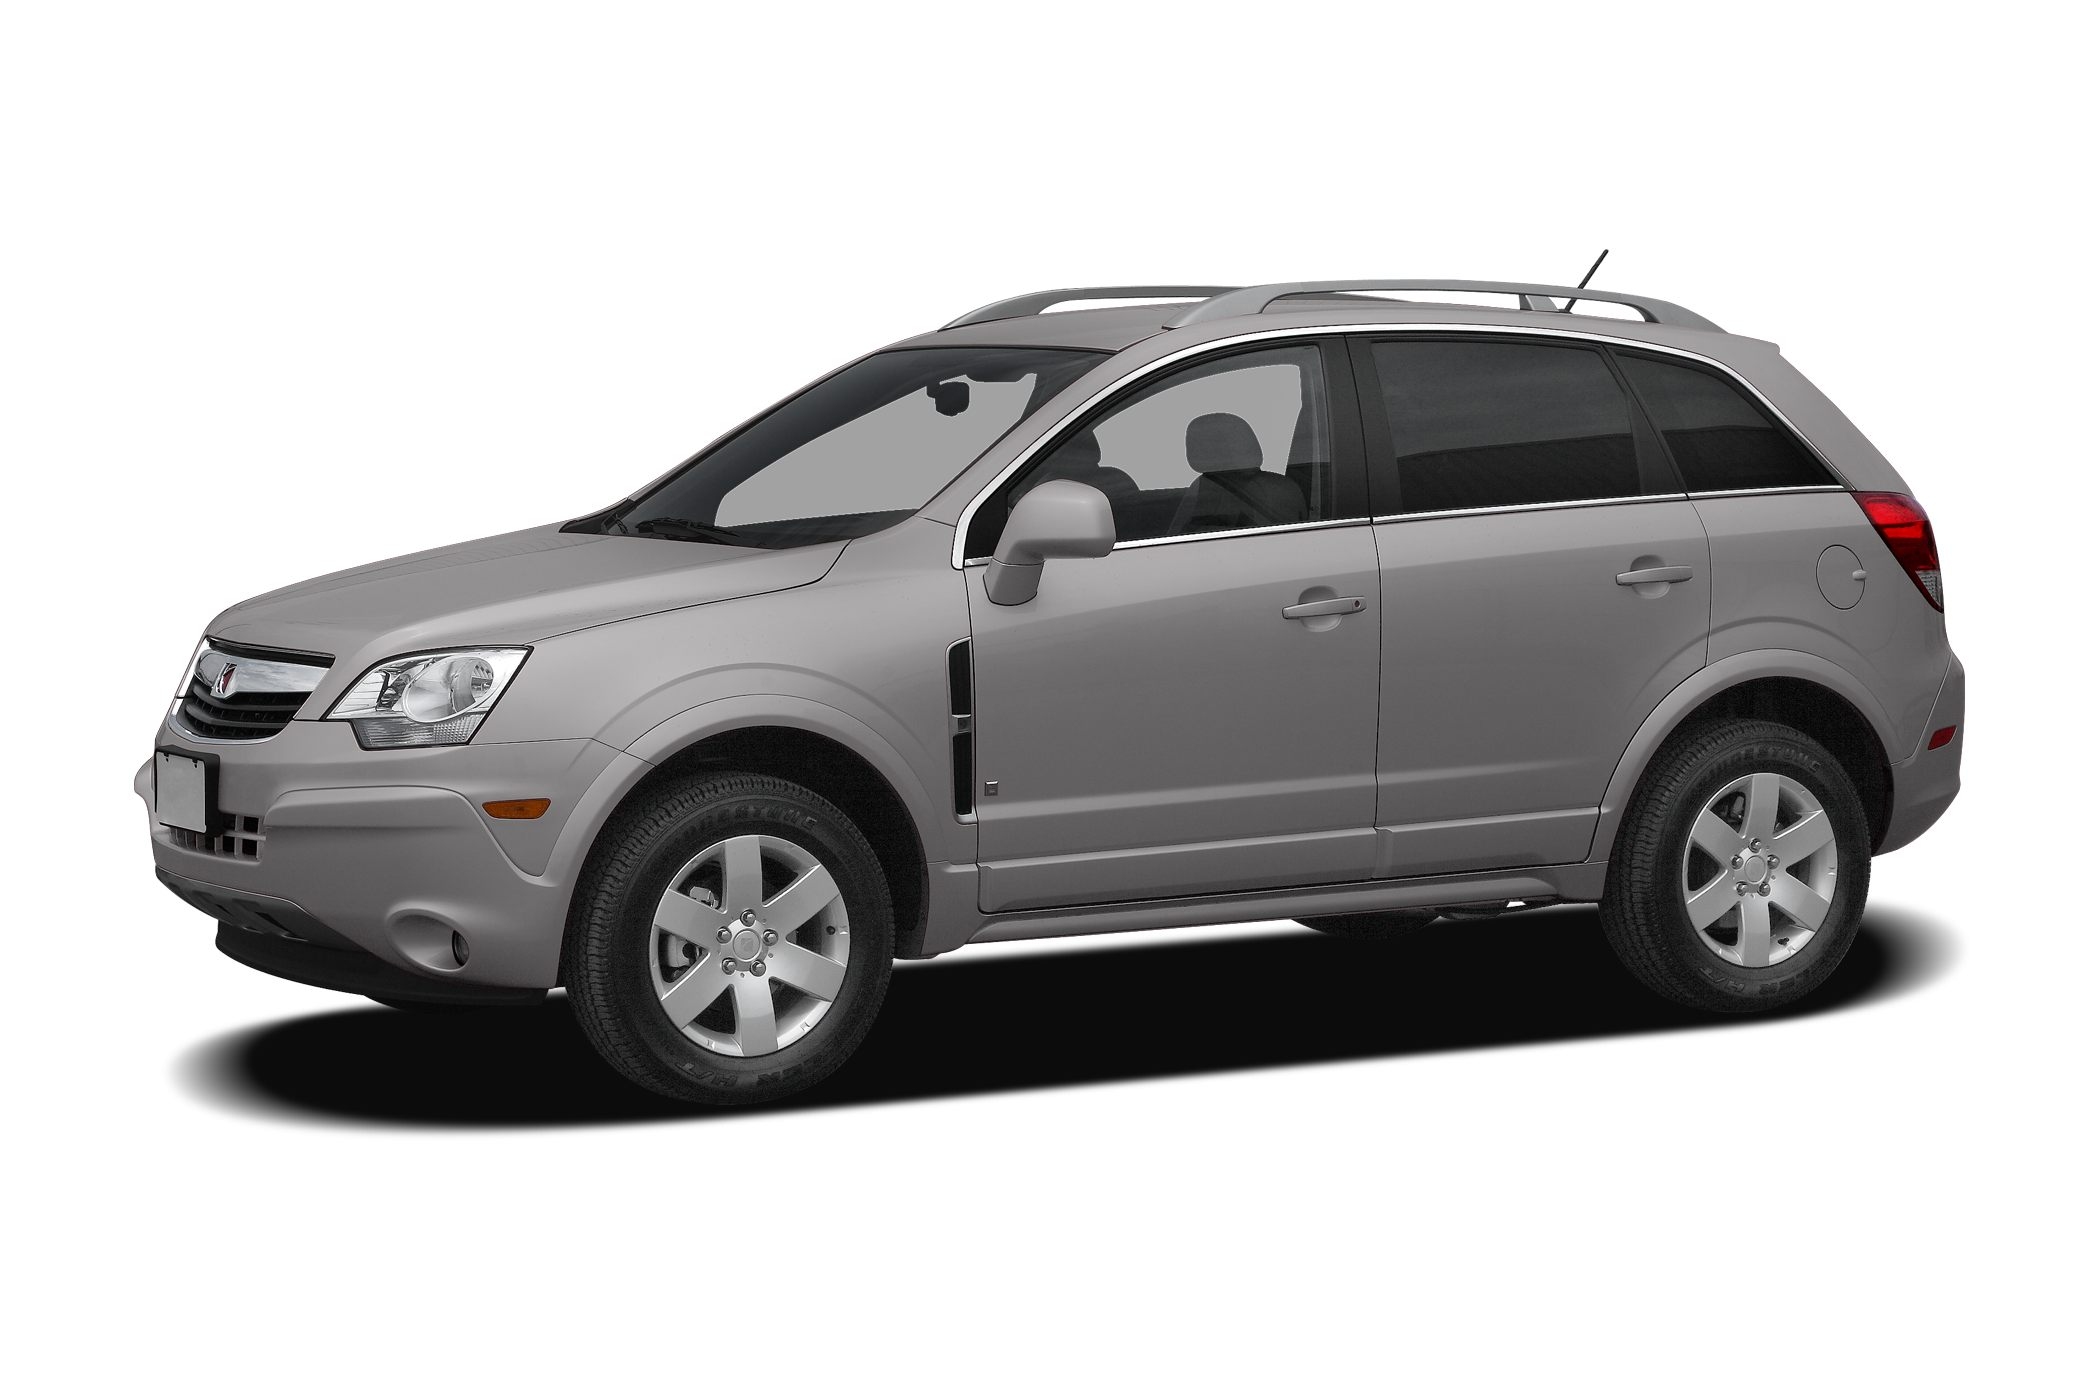 2008 Saturn Vue XR SUV for sale in Marion for $11,900 with 66,601 miles.